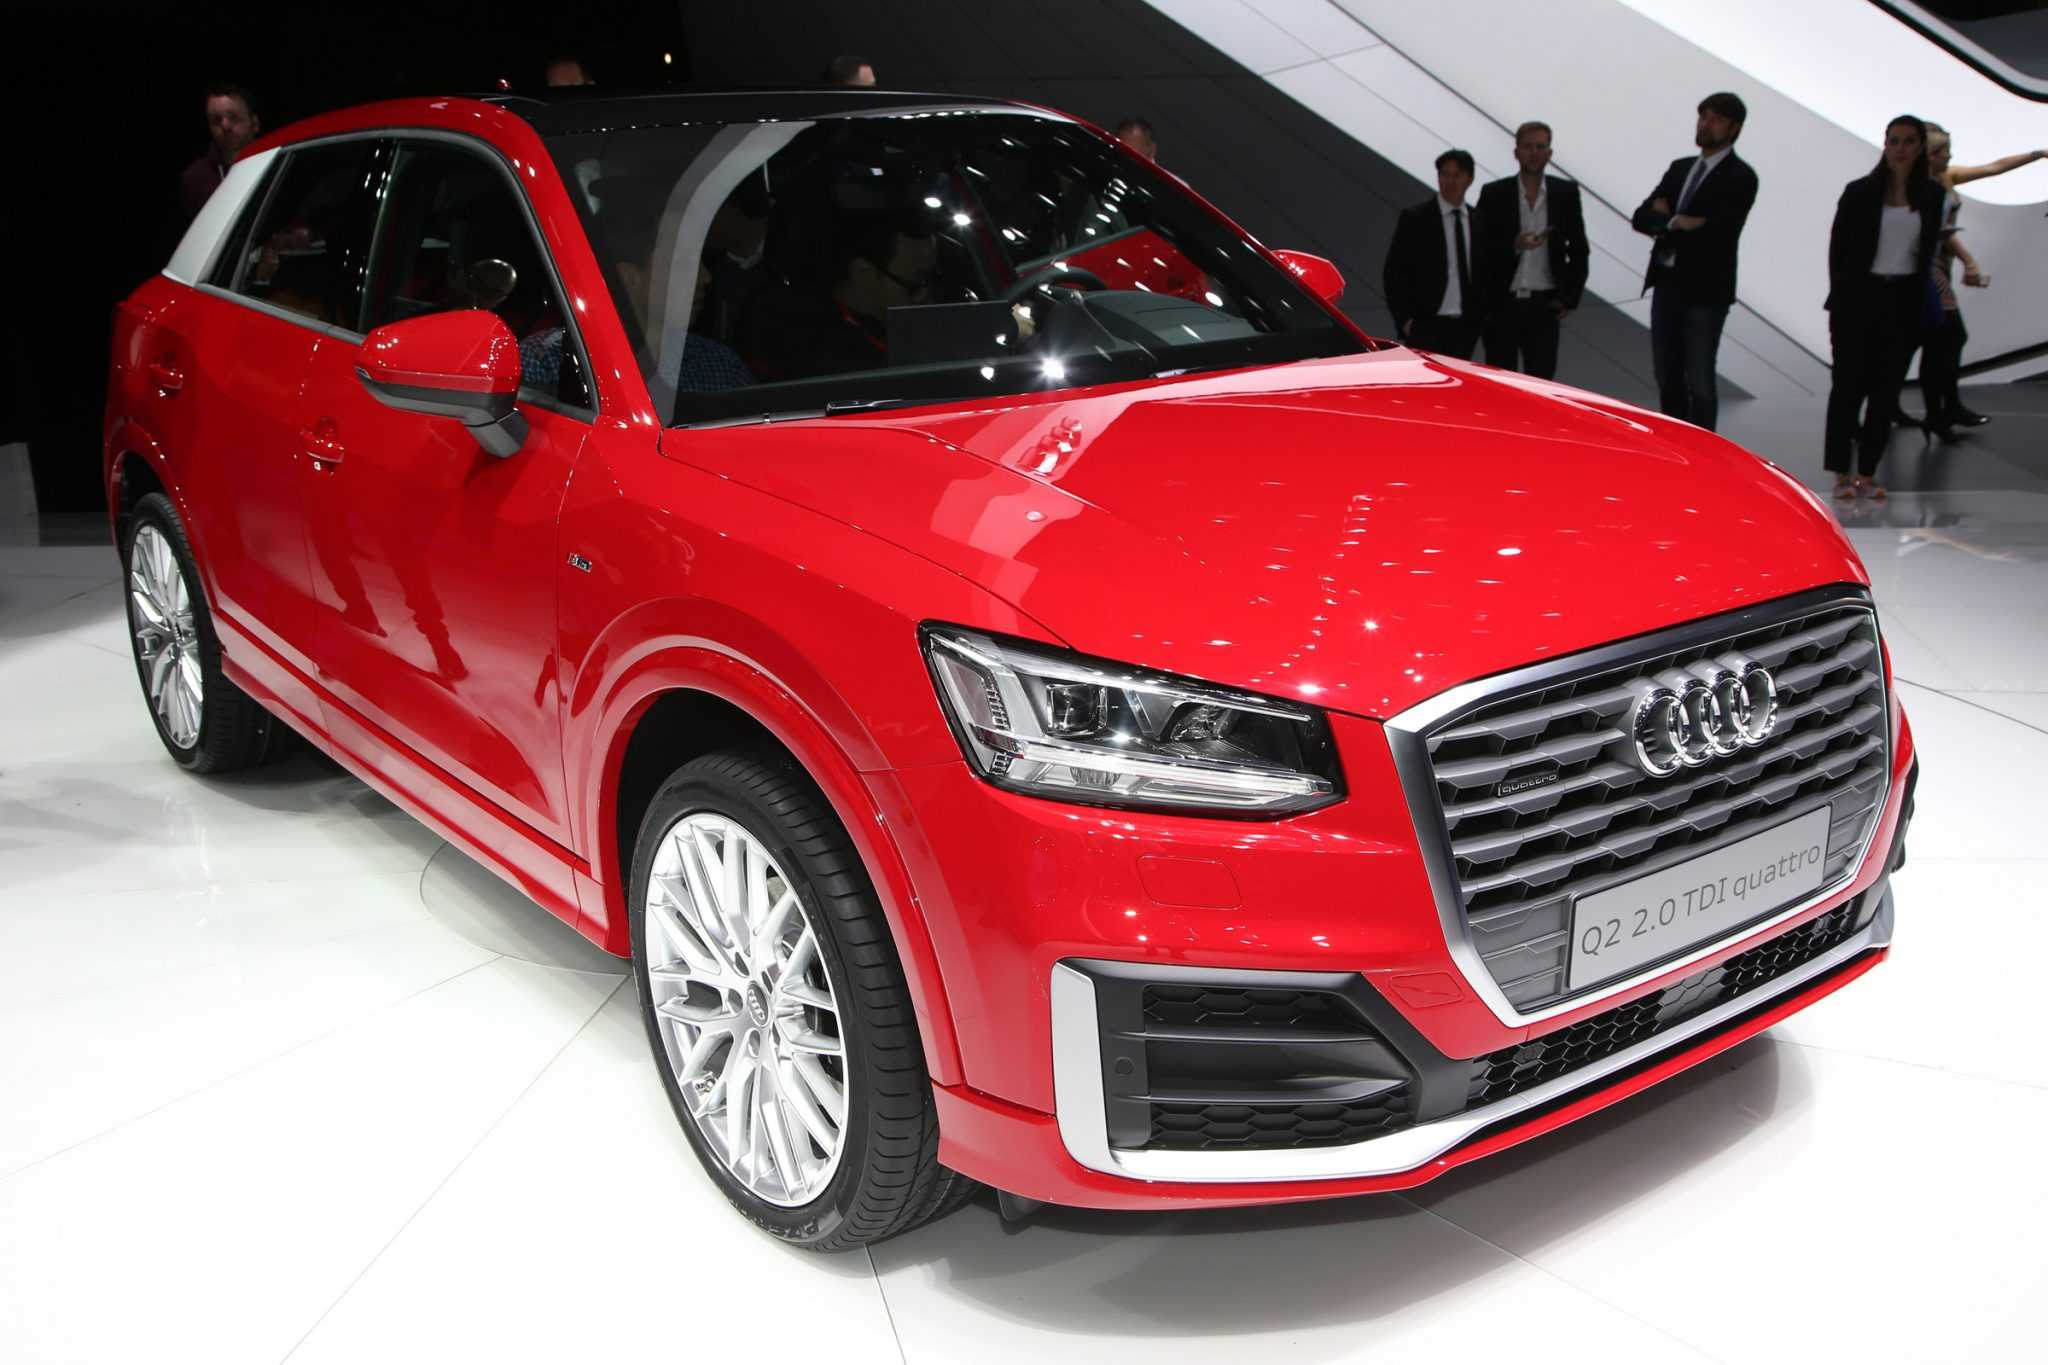 Audi Q2 Crossover Lineup Specs and Pricing Announced